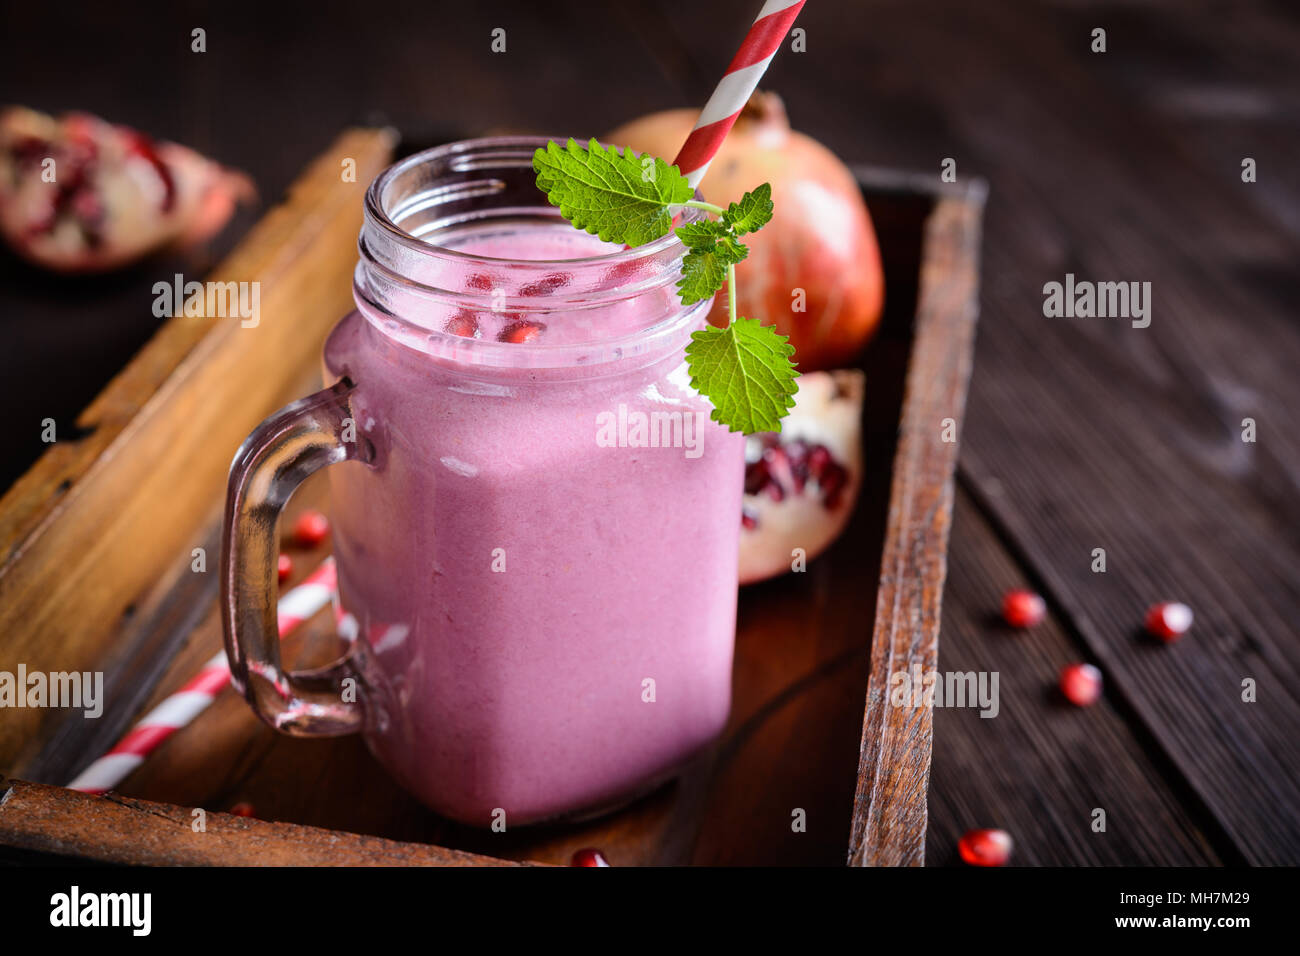 Refreshing pomegranate smoothie in a glass jar Stock Photo